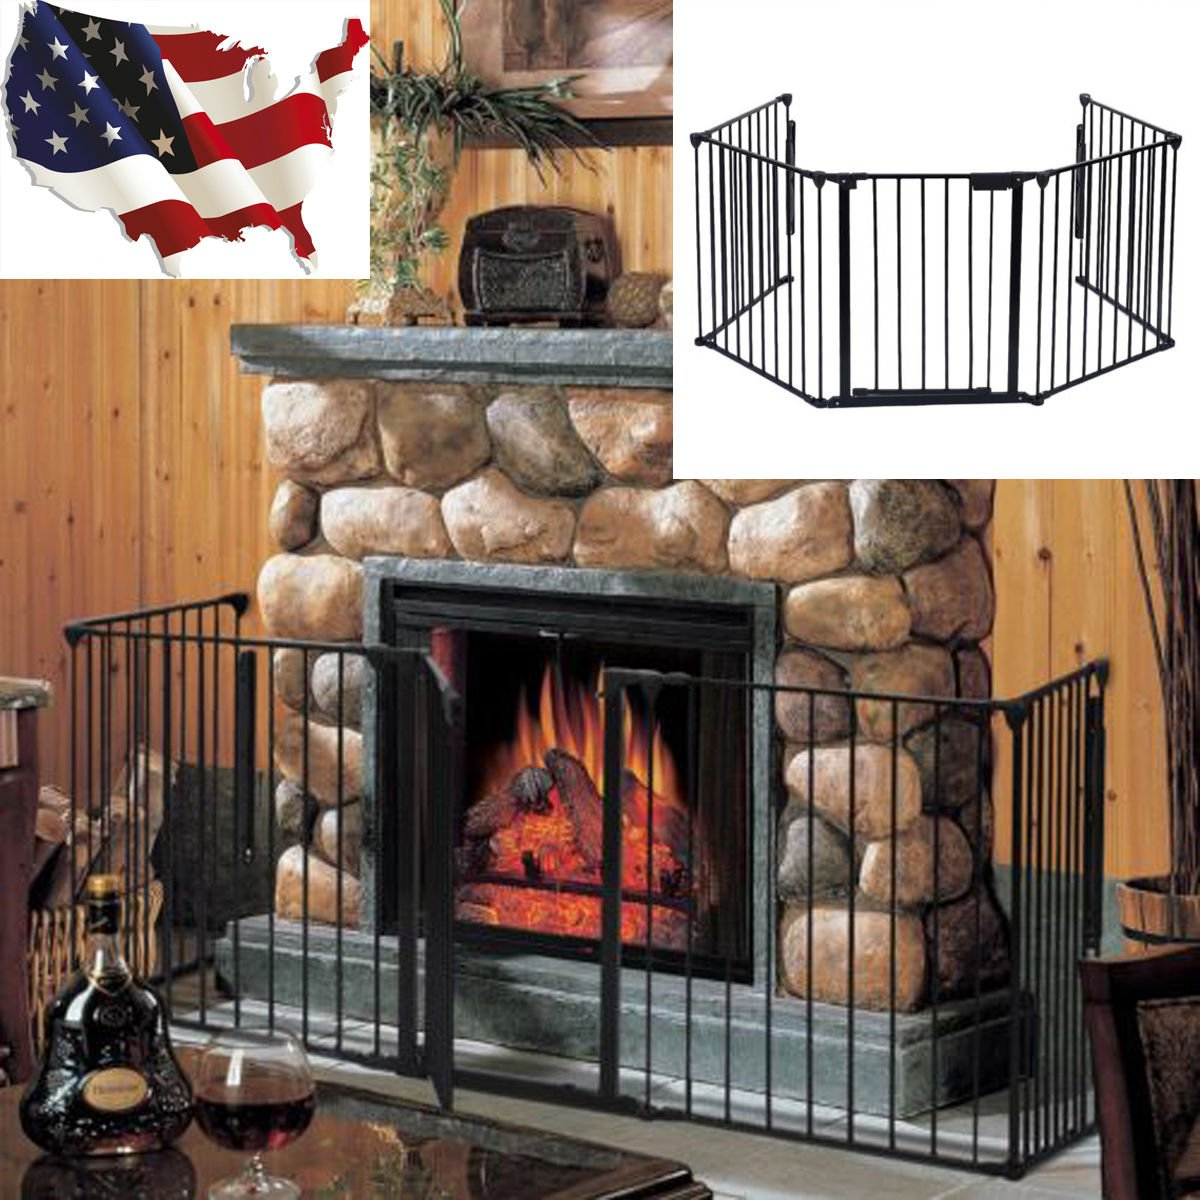 Charming Baby Fireplace Gate Part - 6: Amazon.com : Fireplace Fence Baby Safety Fence Hearth Gate BBQ Metal Fire  Gate Pet Dog Cat : Baby